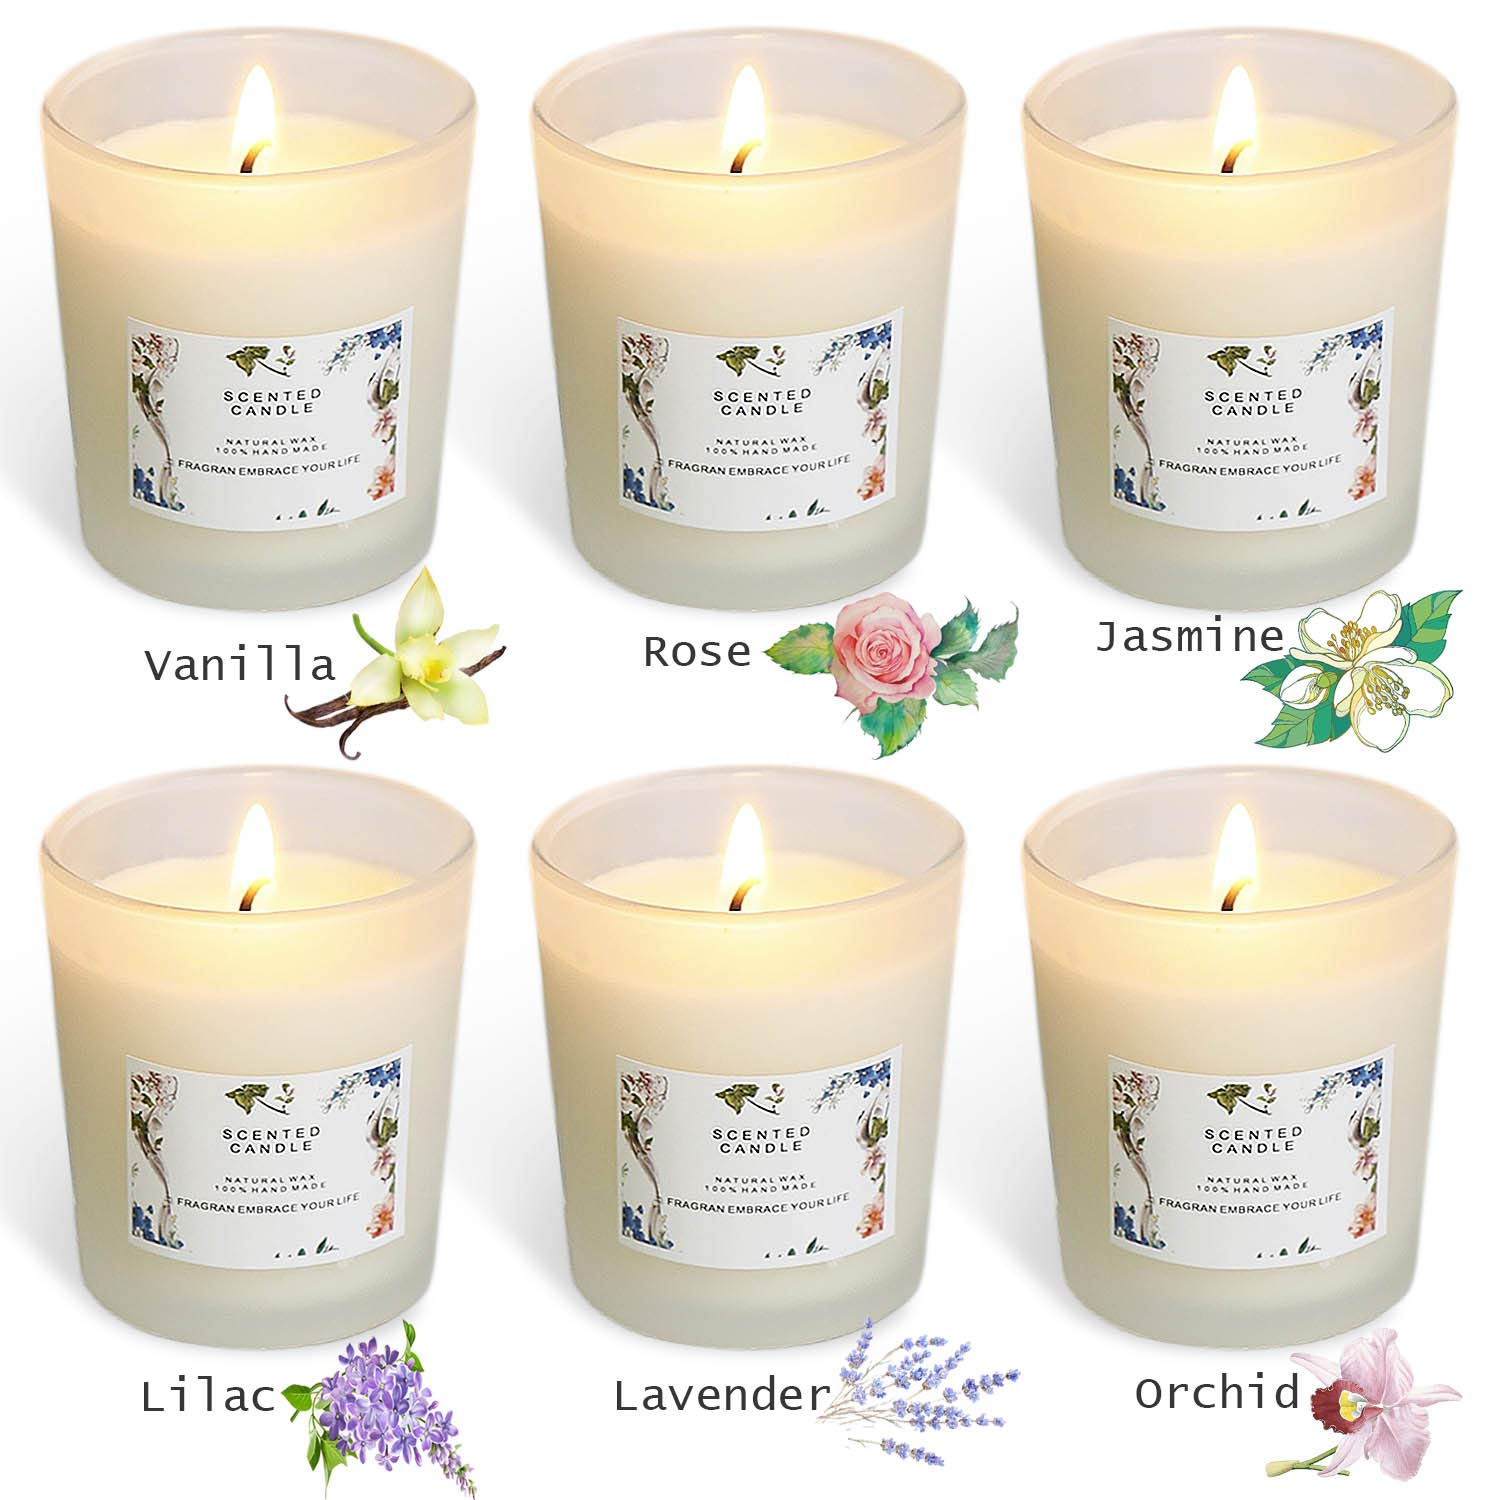 YIHANG Scented Candle Gift Set - (6 x 2.2 Oz/65g) - Aromatherapy Set of Fragrance Soy Wax - for Stress Relief and Relaxation